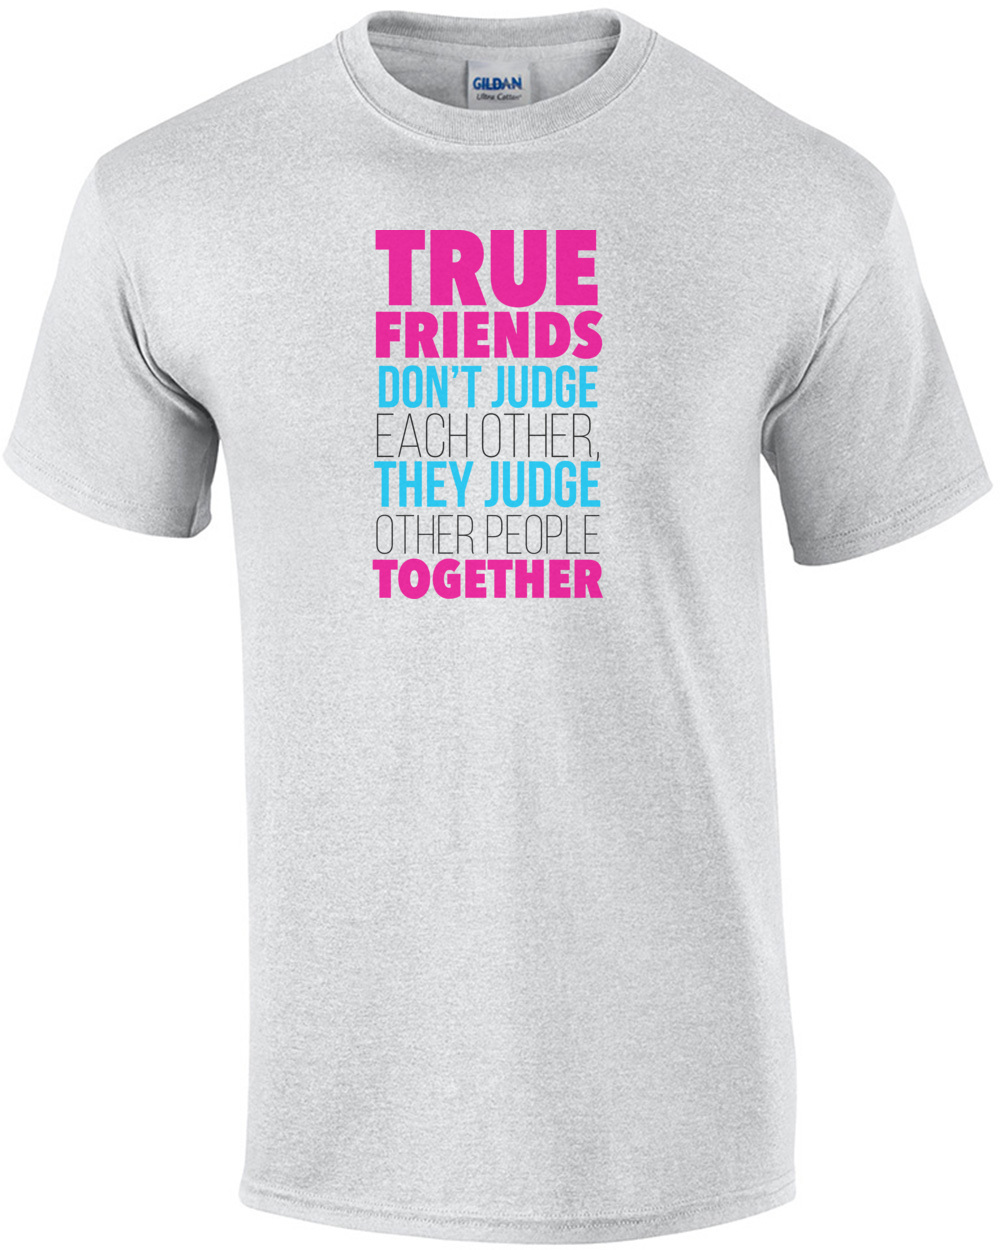 2a90f474 true-friends-dont-judge-each-other-they-judge-other-people-together--funny -tshirt-mens-regular-ash.jpg